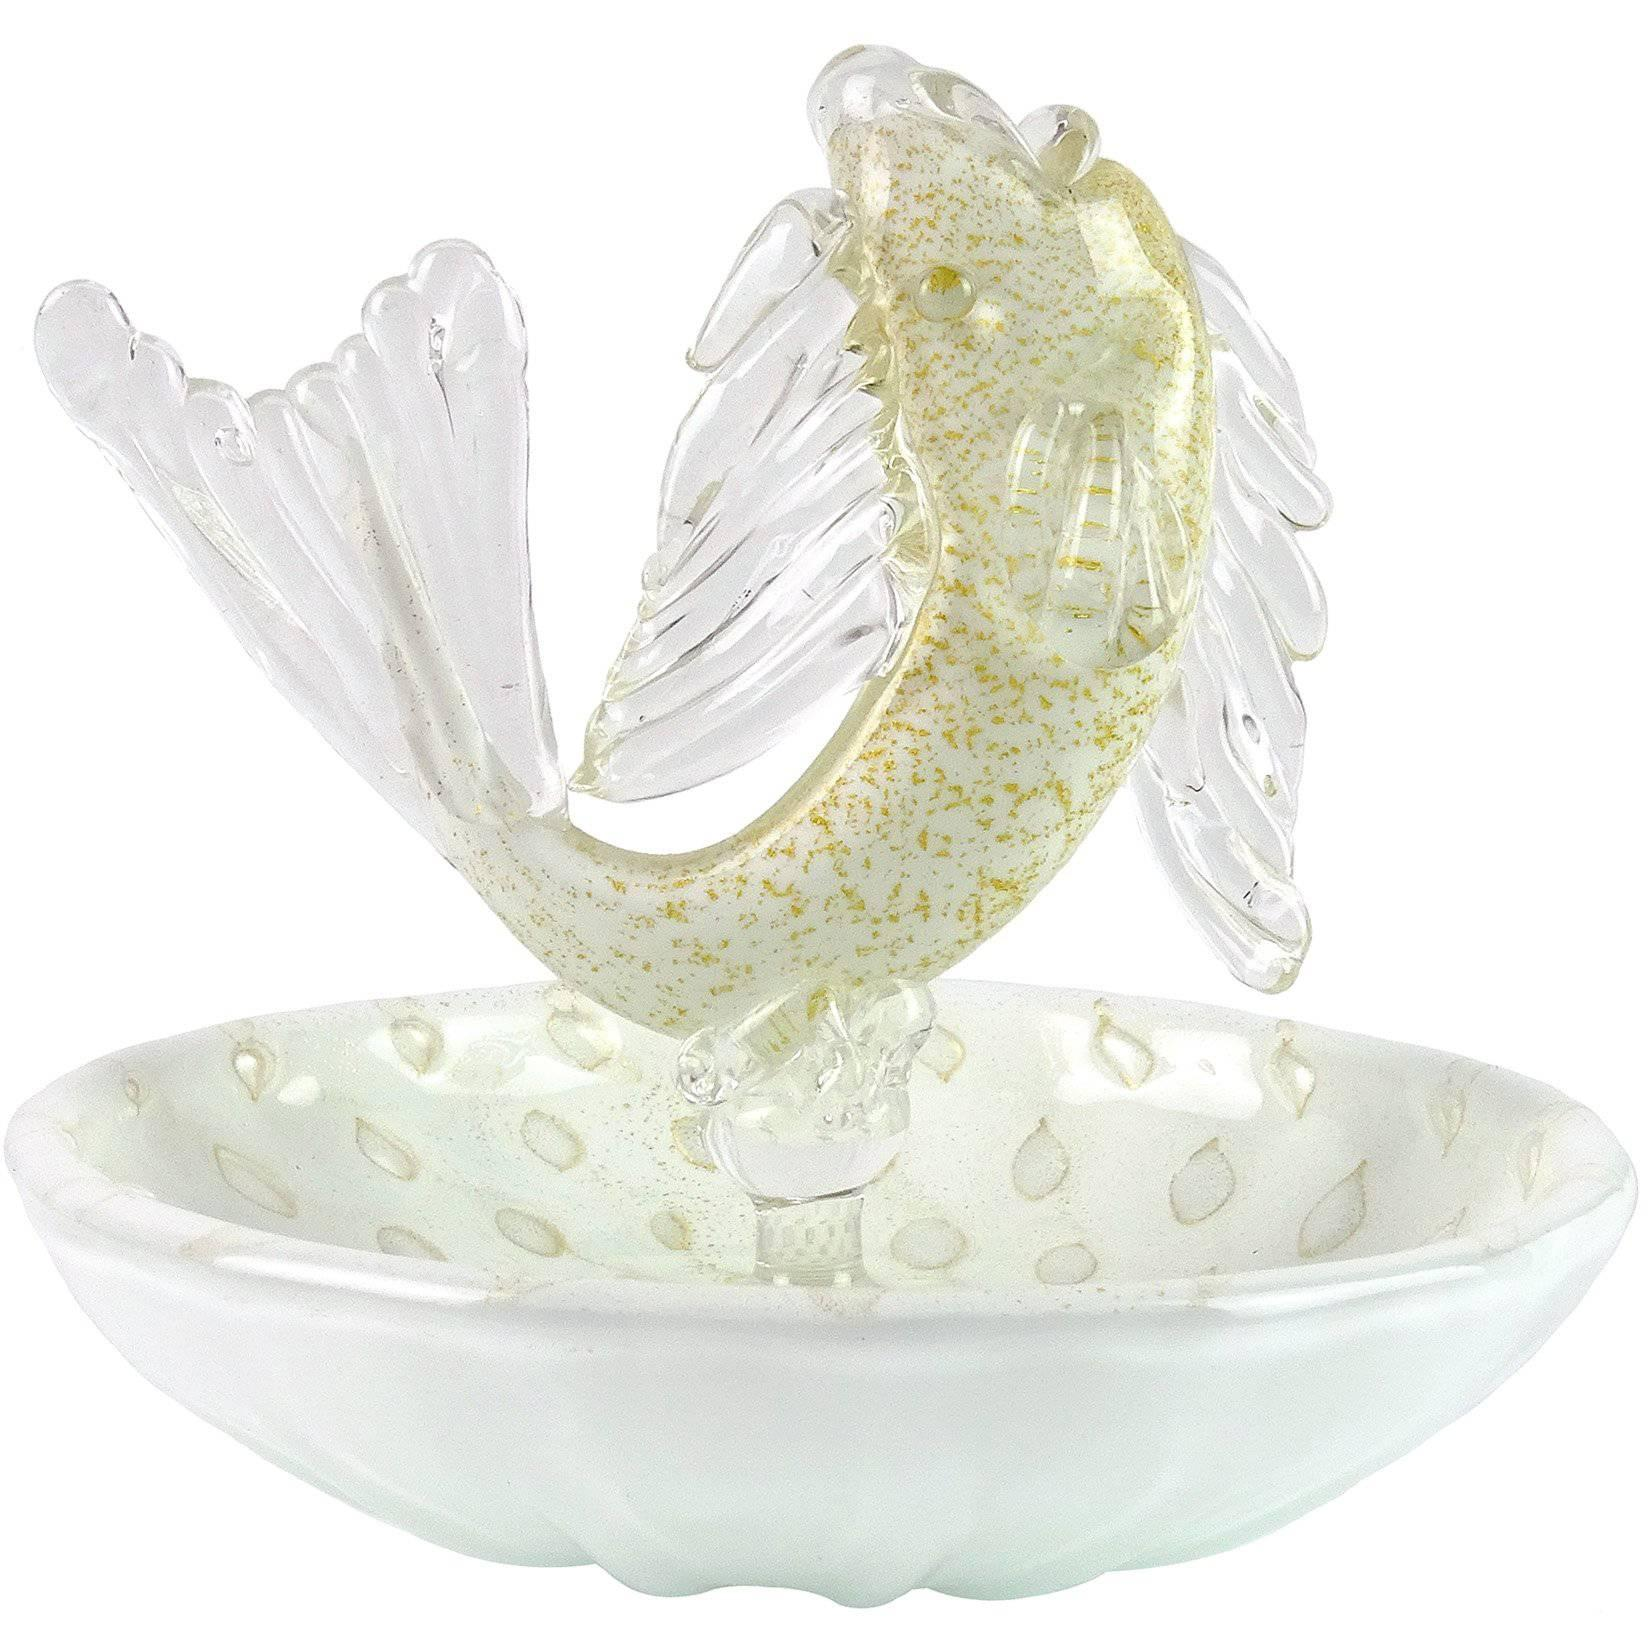 Decorative Glass Bowls Murano White Gold Flecks Italian Art Glass Fish Decorative Ring Dish Bowl